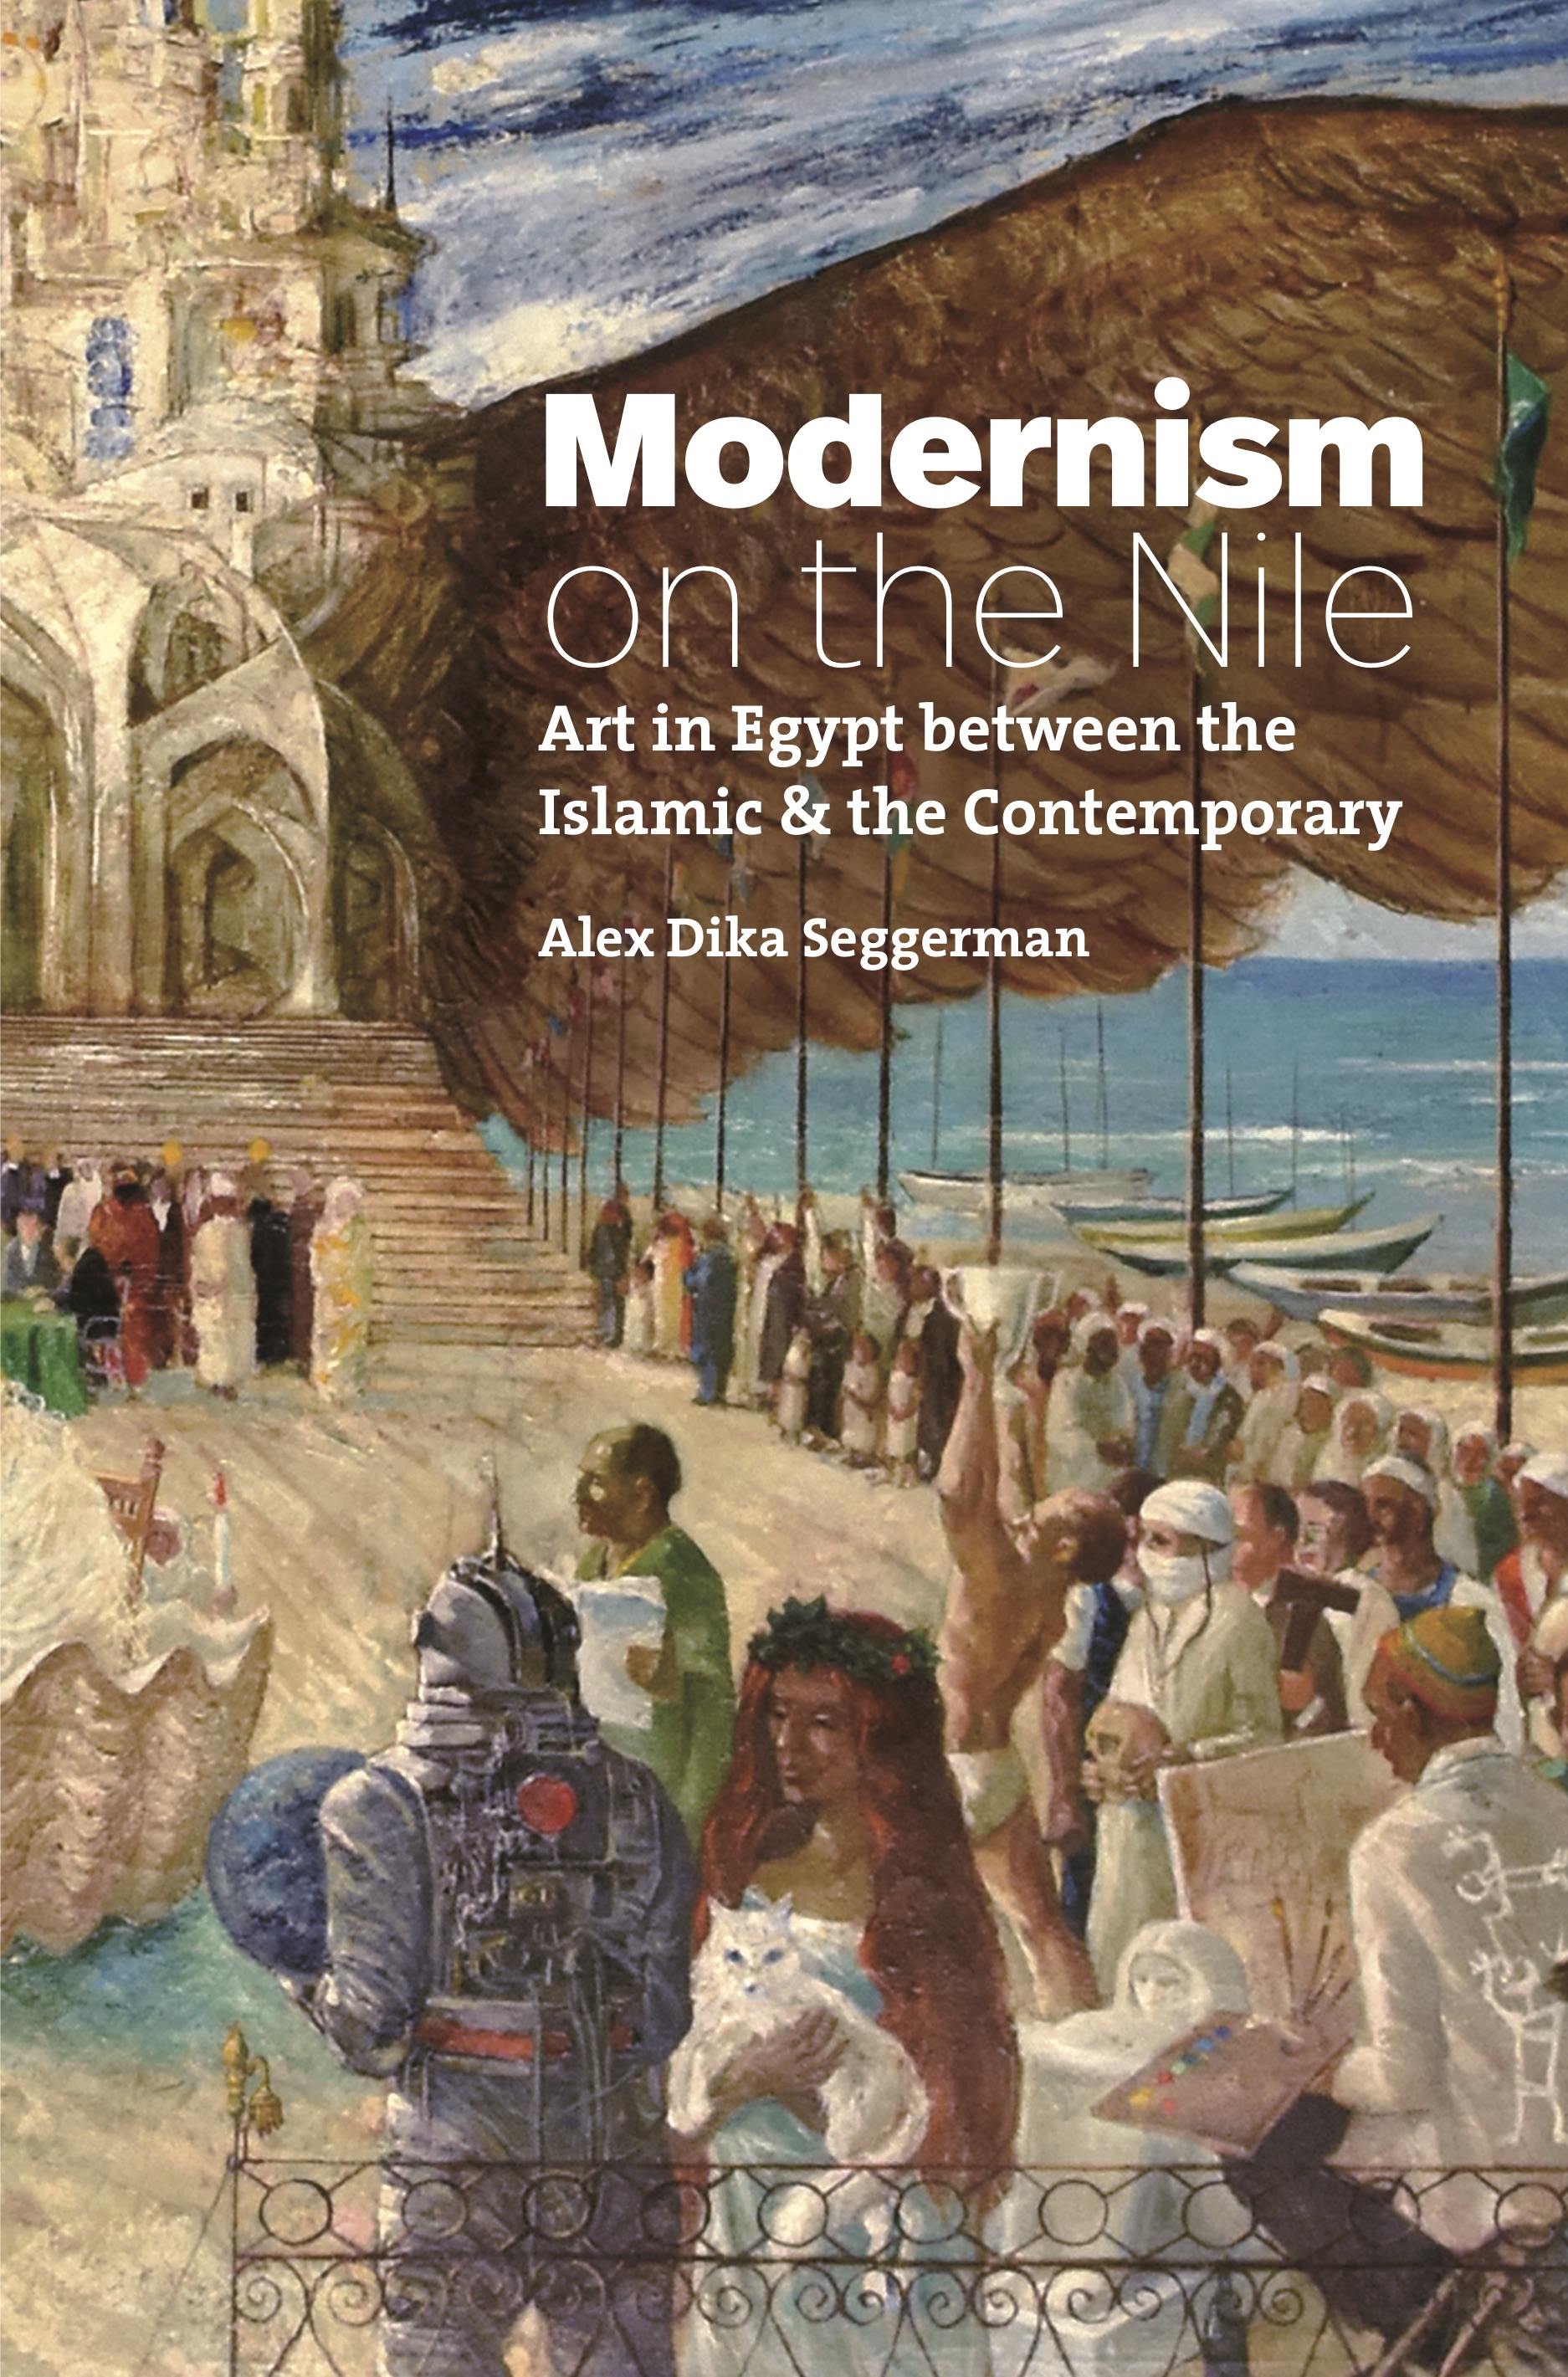 Pictured: book cover of Modernism on the Nile